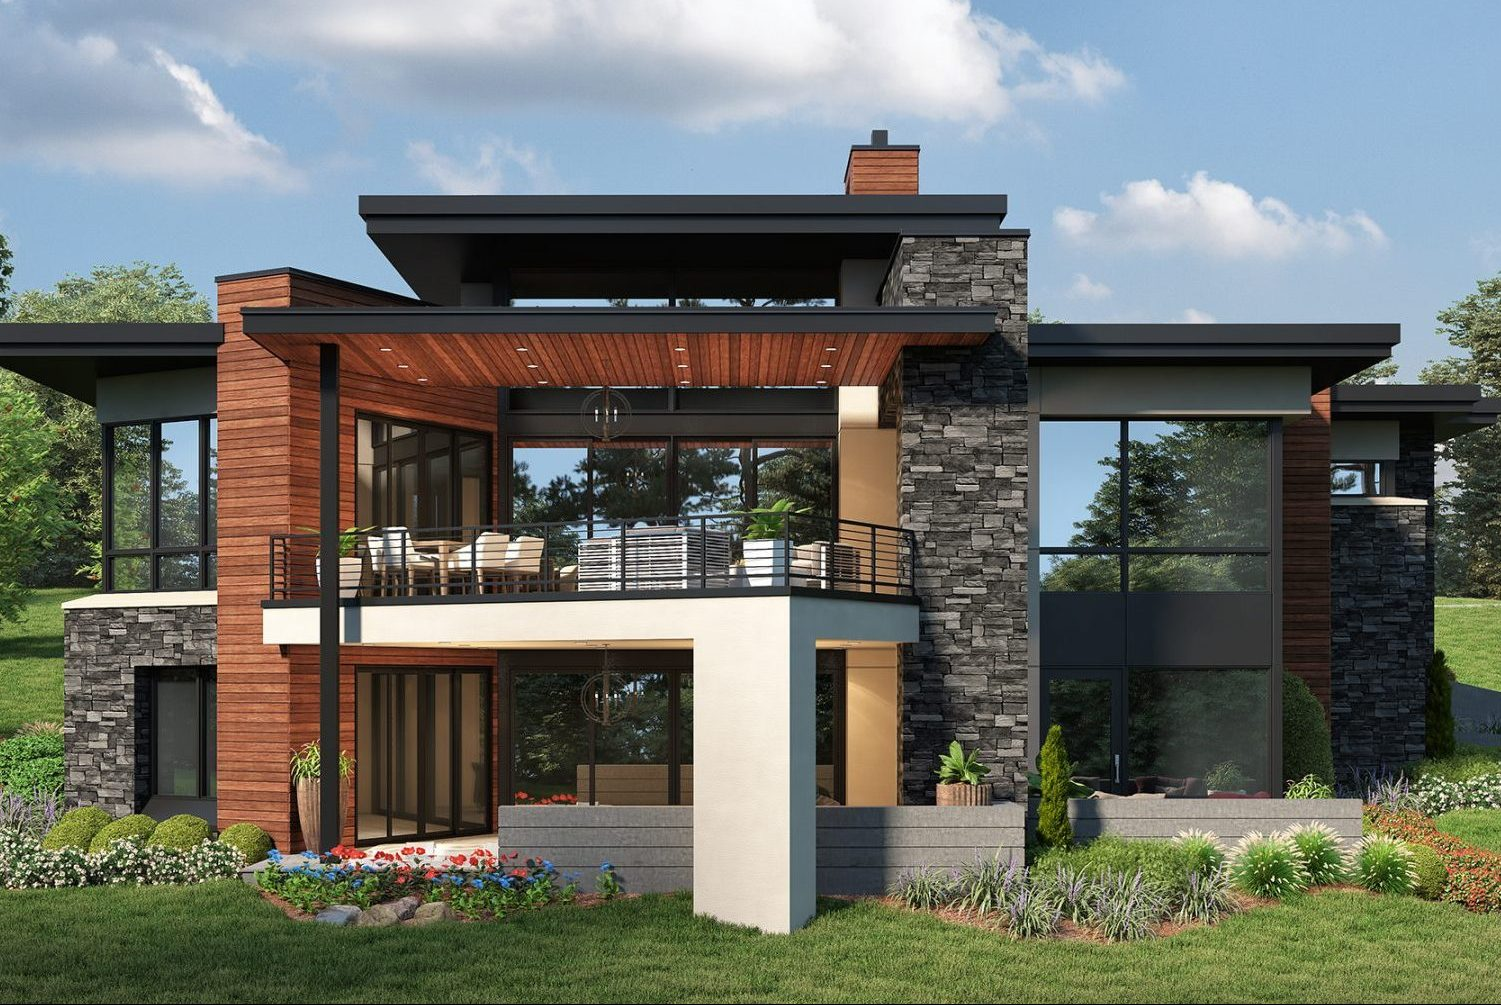 Colorado modern custom home designed by Godden Sudik Architects with covered outdoor living and walkout basement